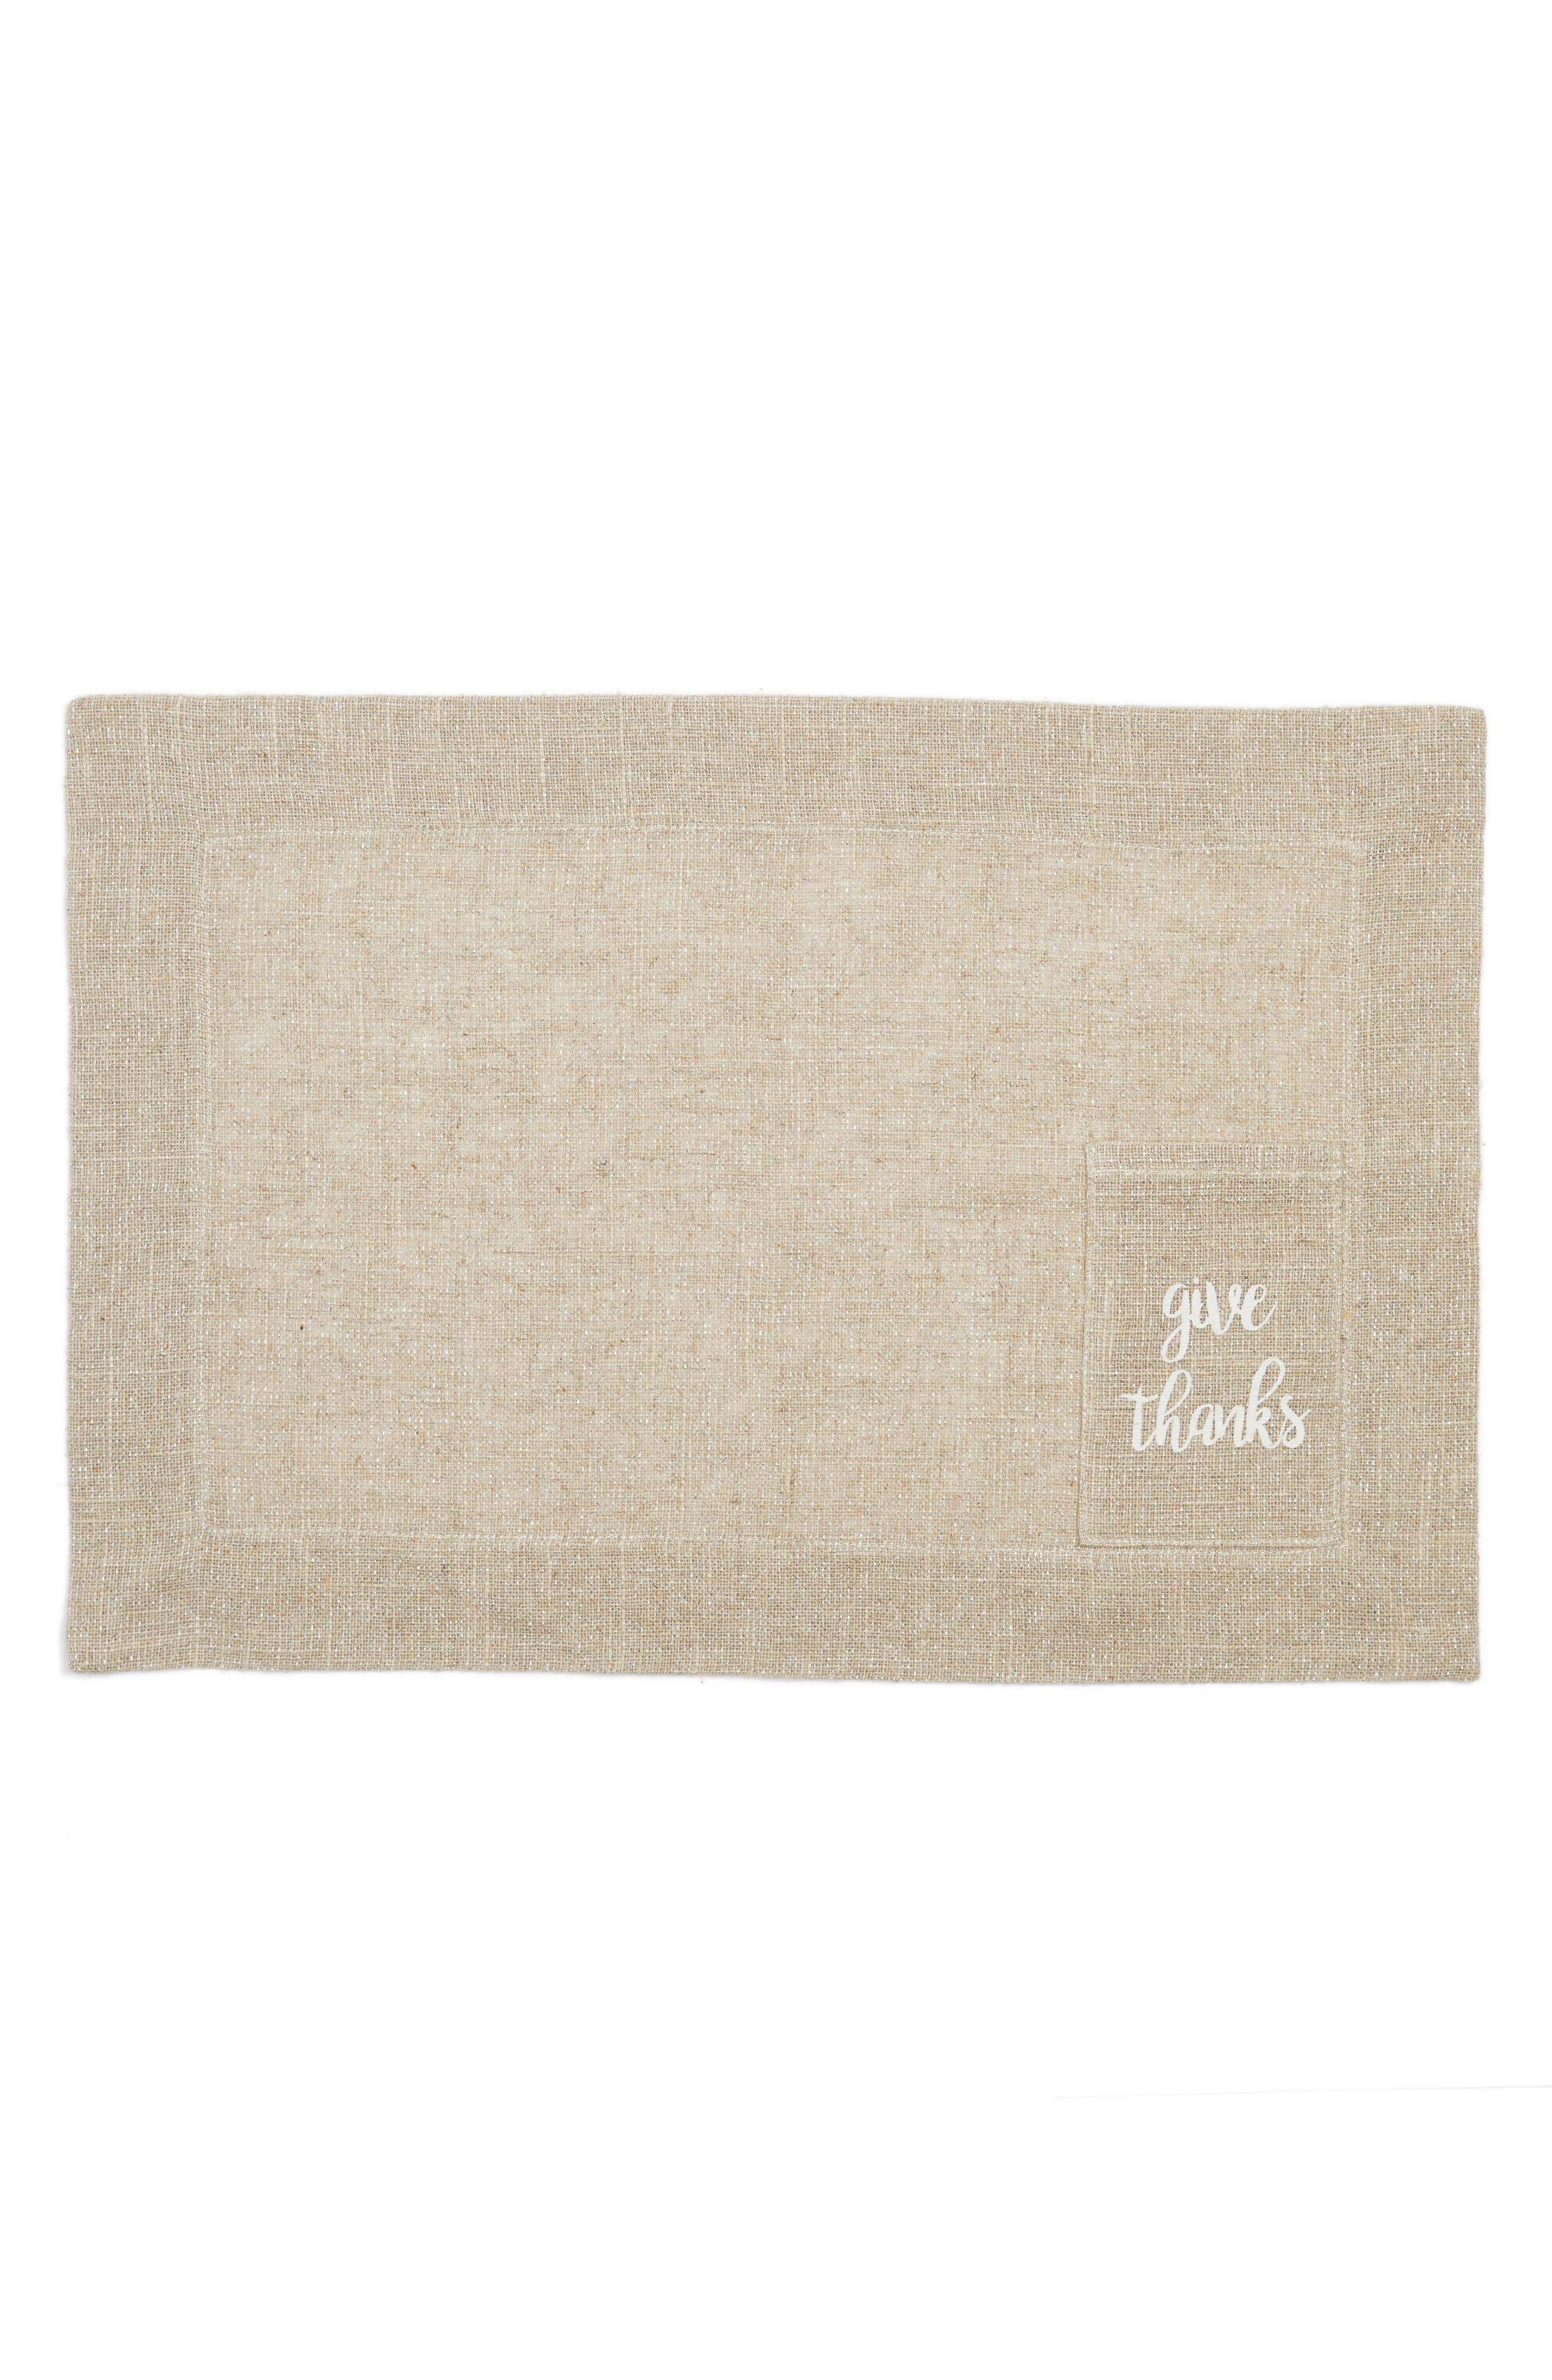 Give Thanks Placemat,                             Main thumbnail 1, color,                             250